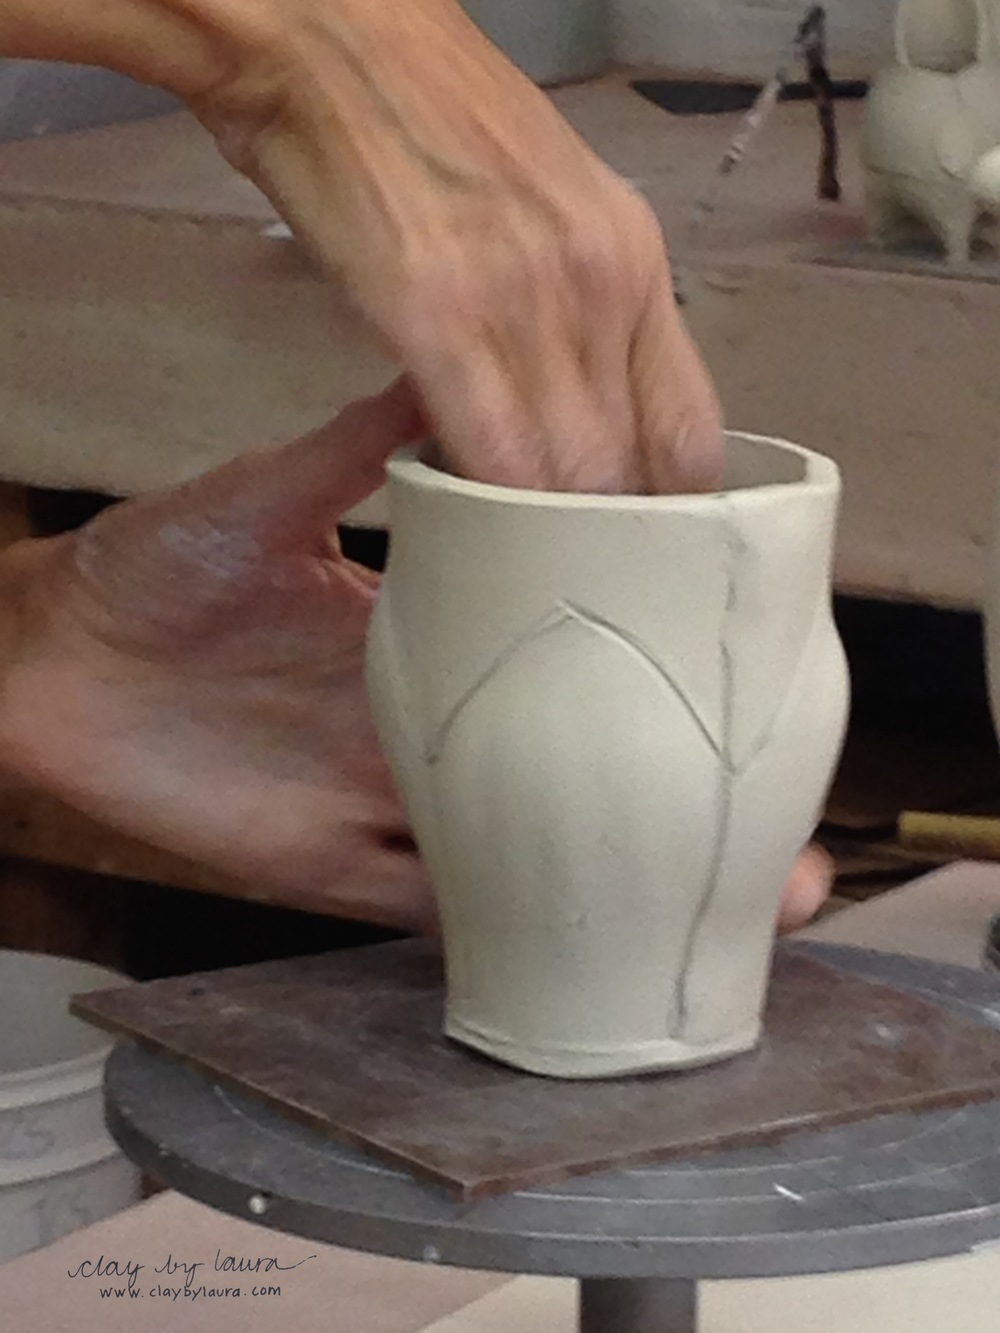 I've watched Sandi's hand-building videos online. It was a pleasure to meet her and see her work the clay in person!